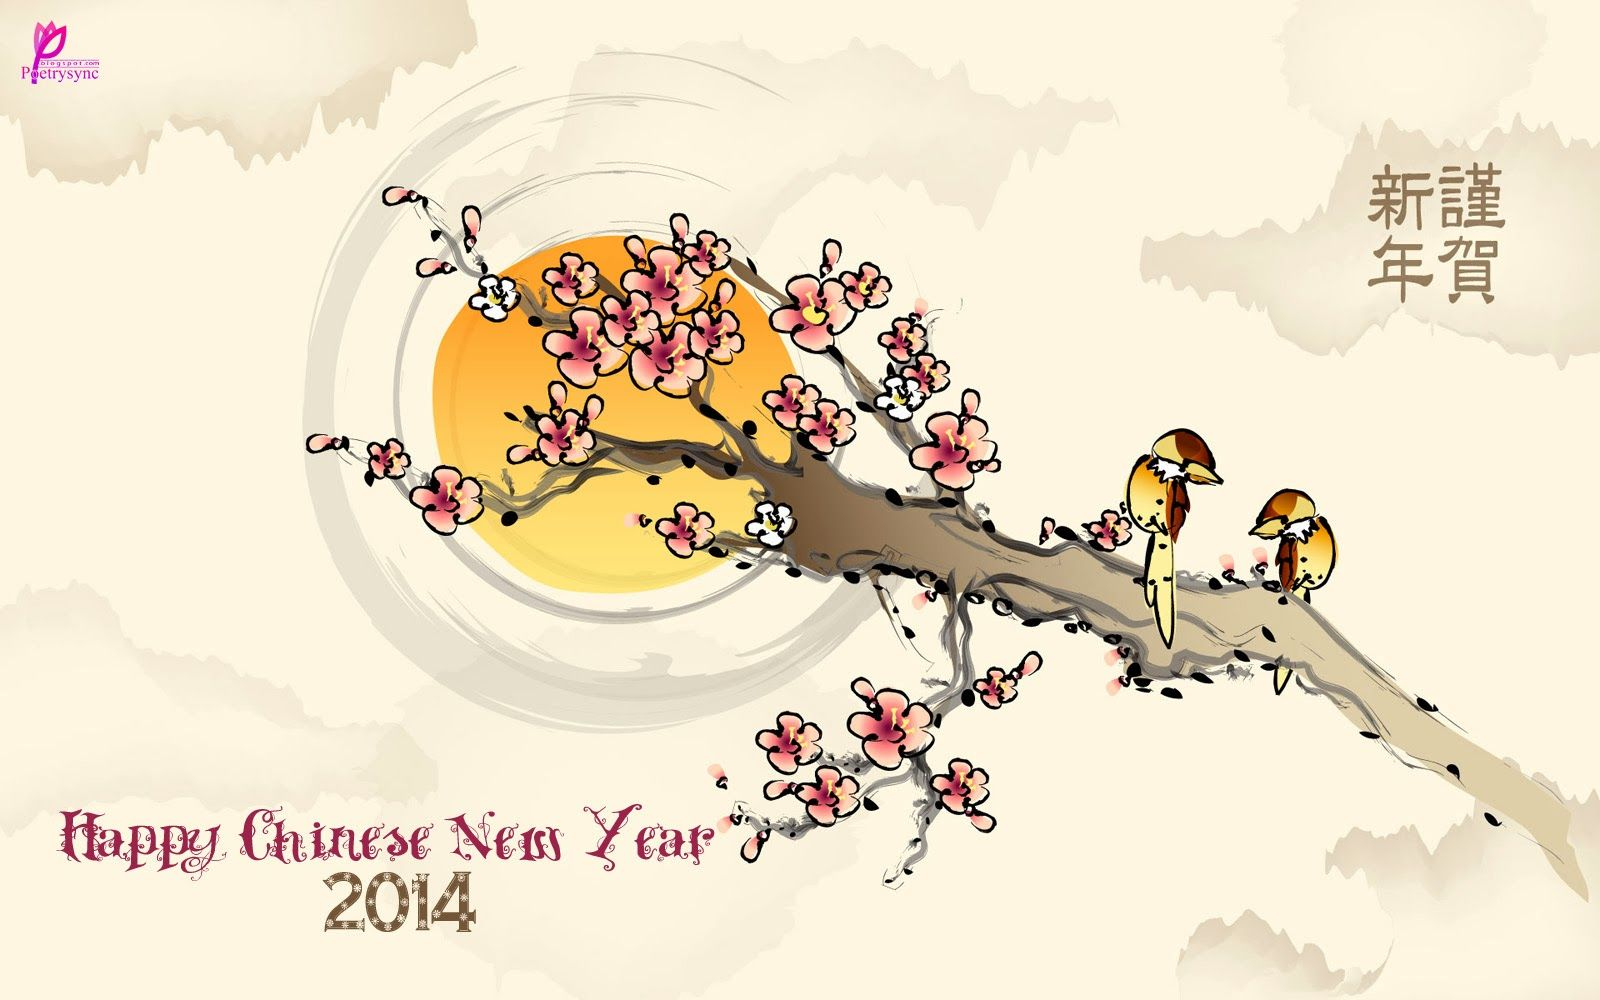 Happy Lunar New Year 2014 Happy Chinese New Year Tet New